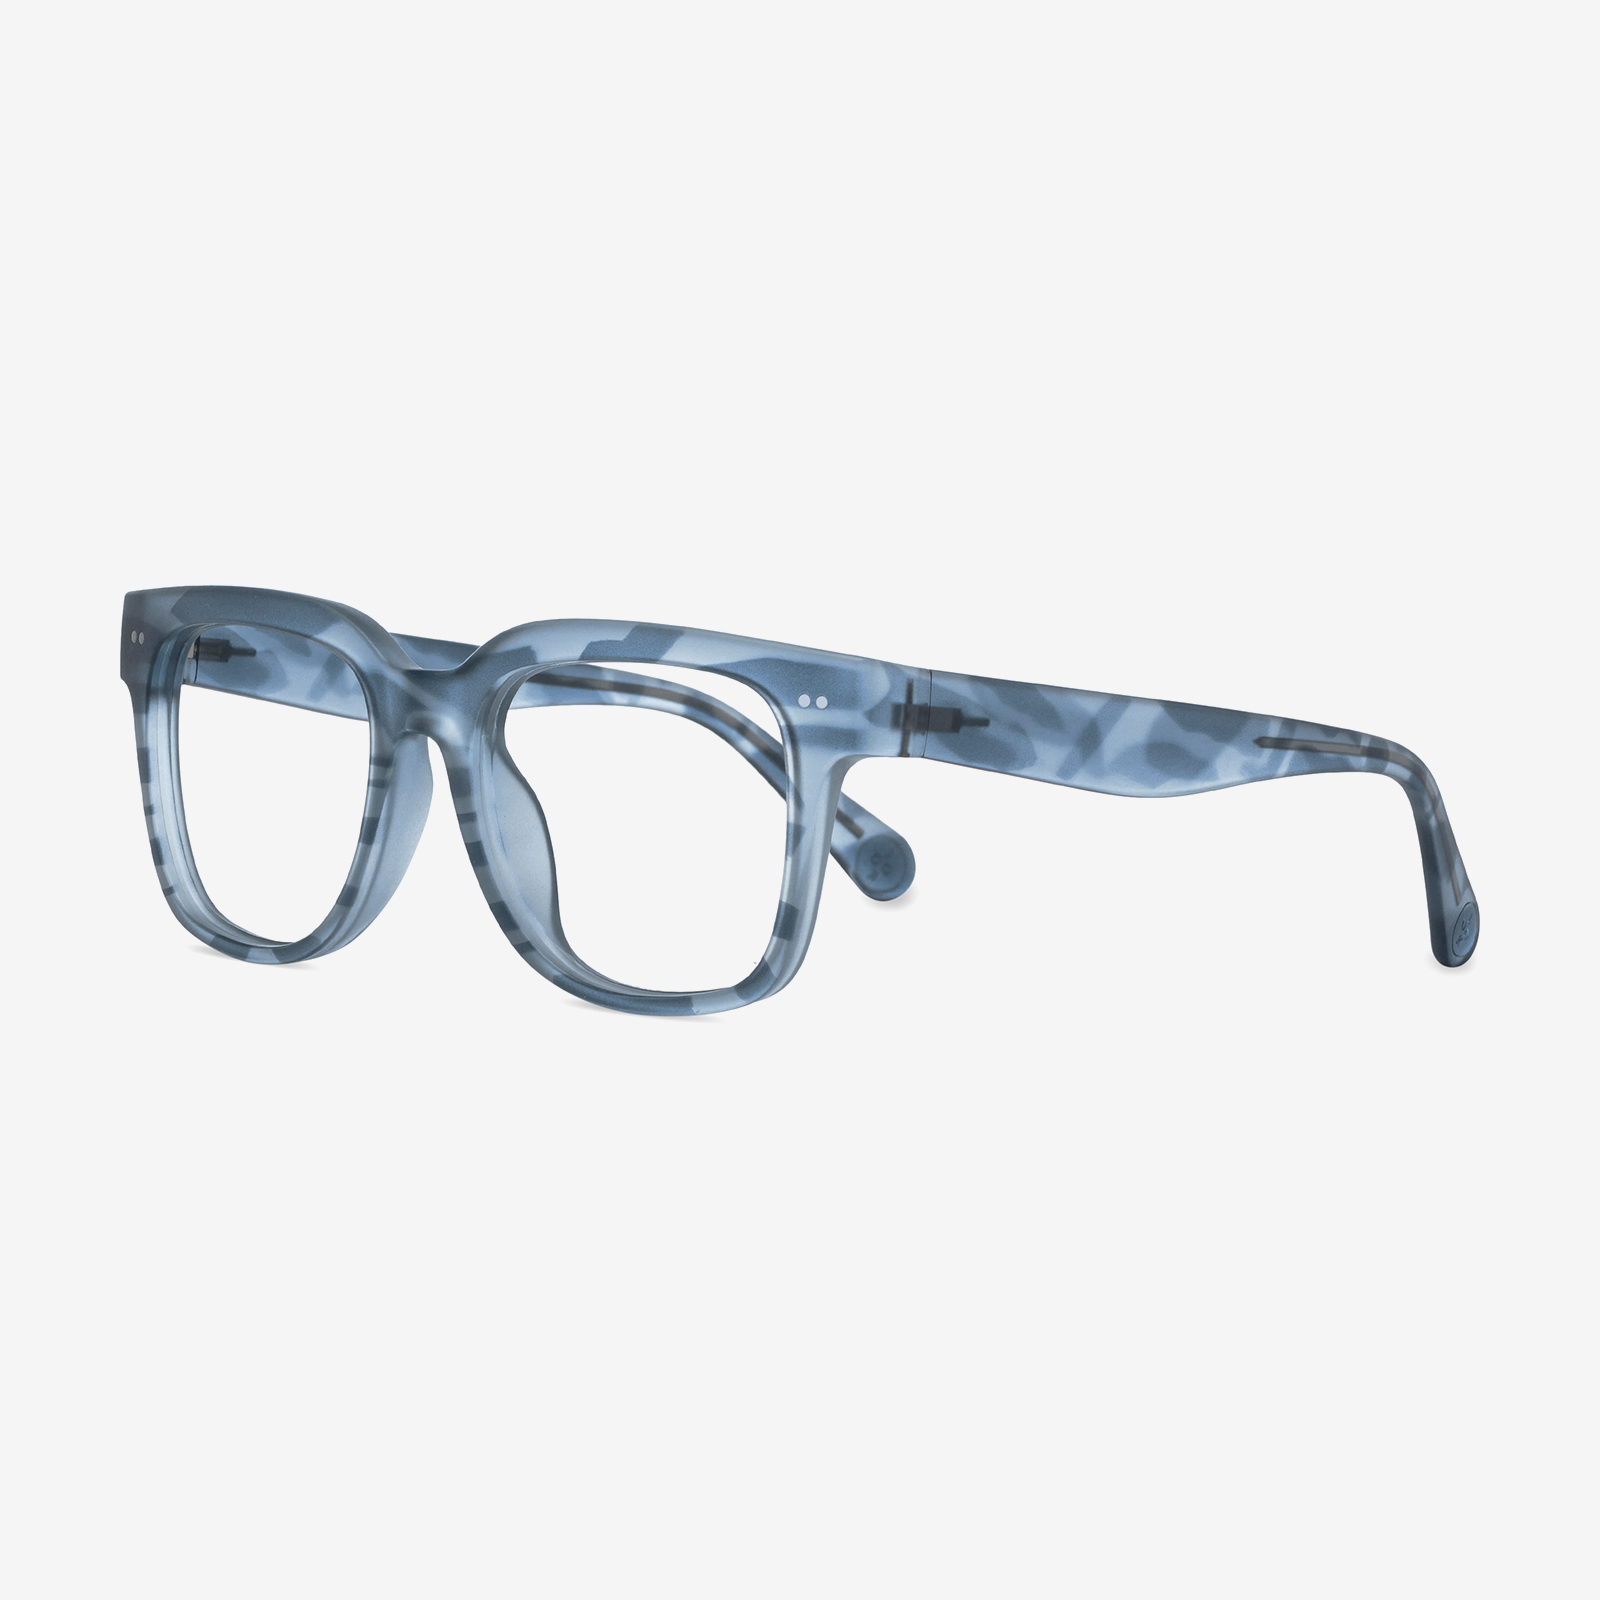 Glasses product picture